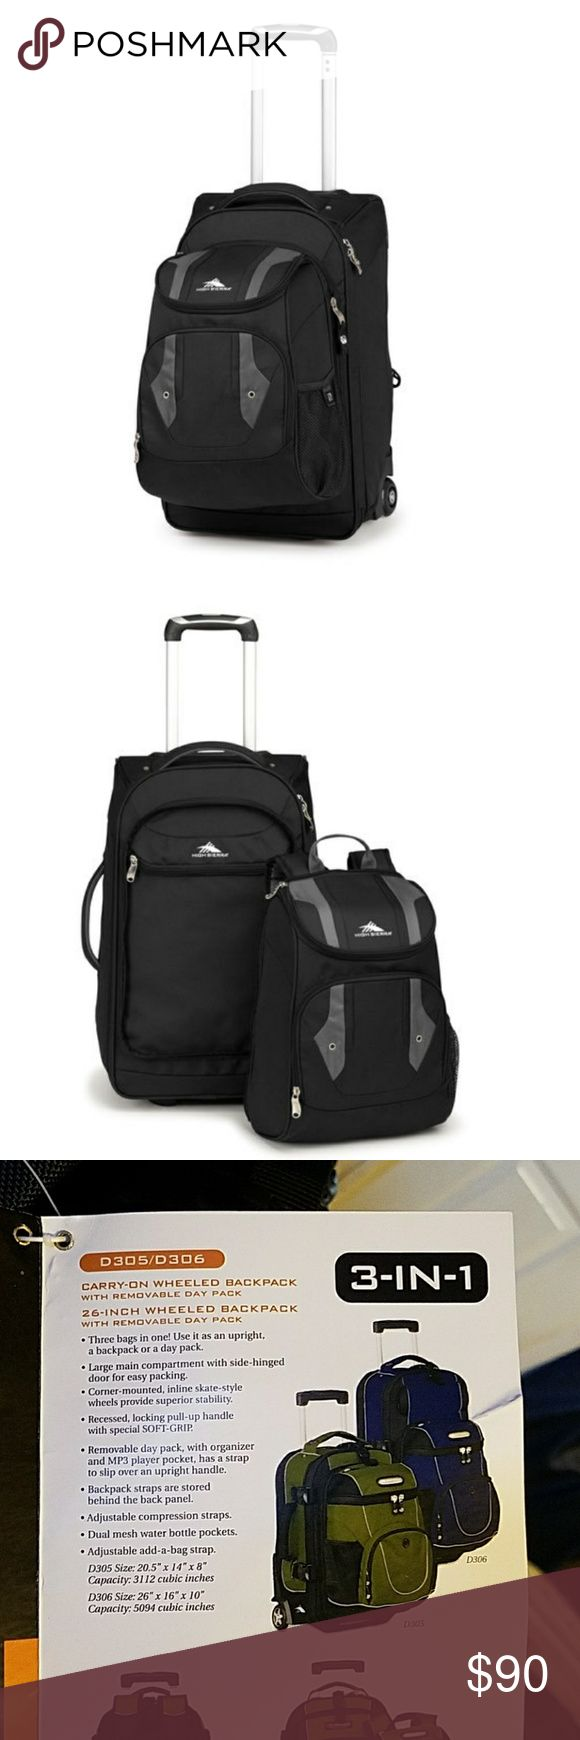 NWT High Sierra 3 in 1 Wheeled Backpack w/Day Pack This is a carry-on wheeled backpack with removable day pack. This is model D306. It can be used as an upright, a backpack or a day pack. High Sierra Bags Luggage & Travel Bags